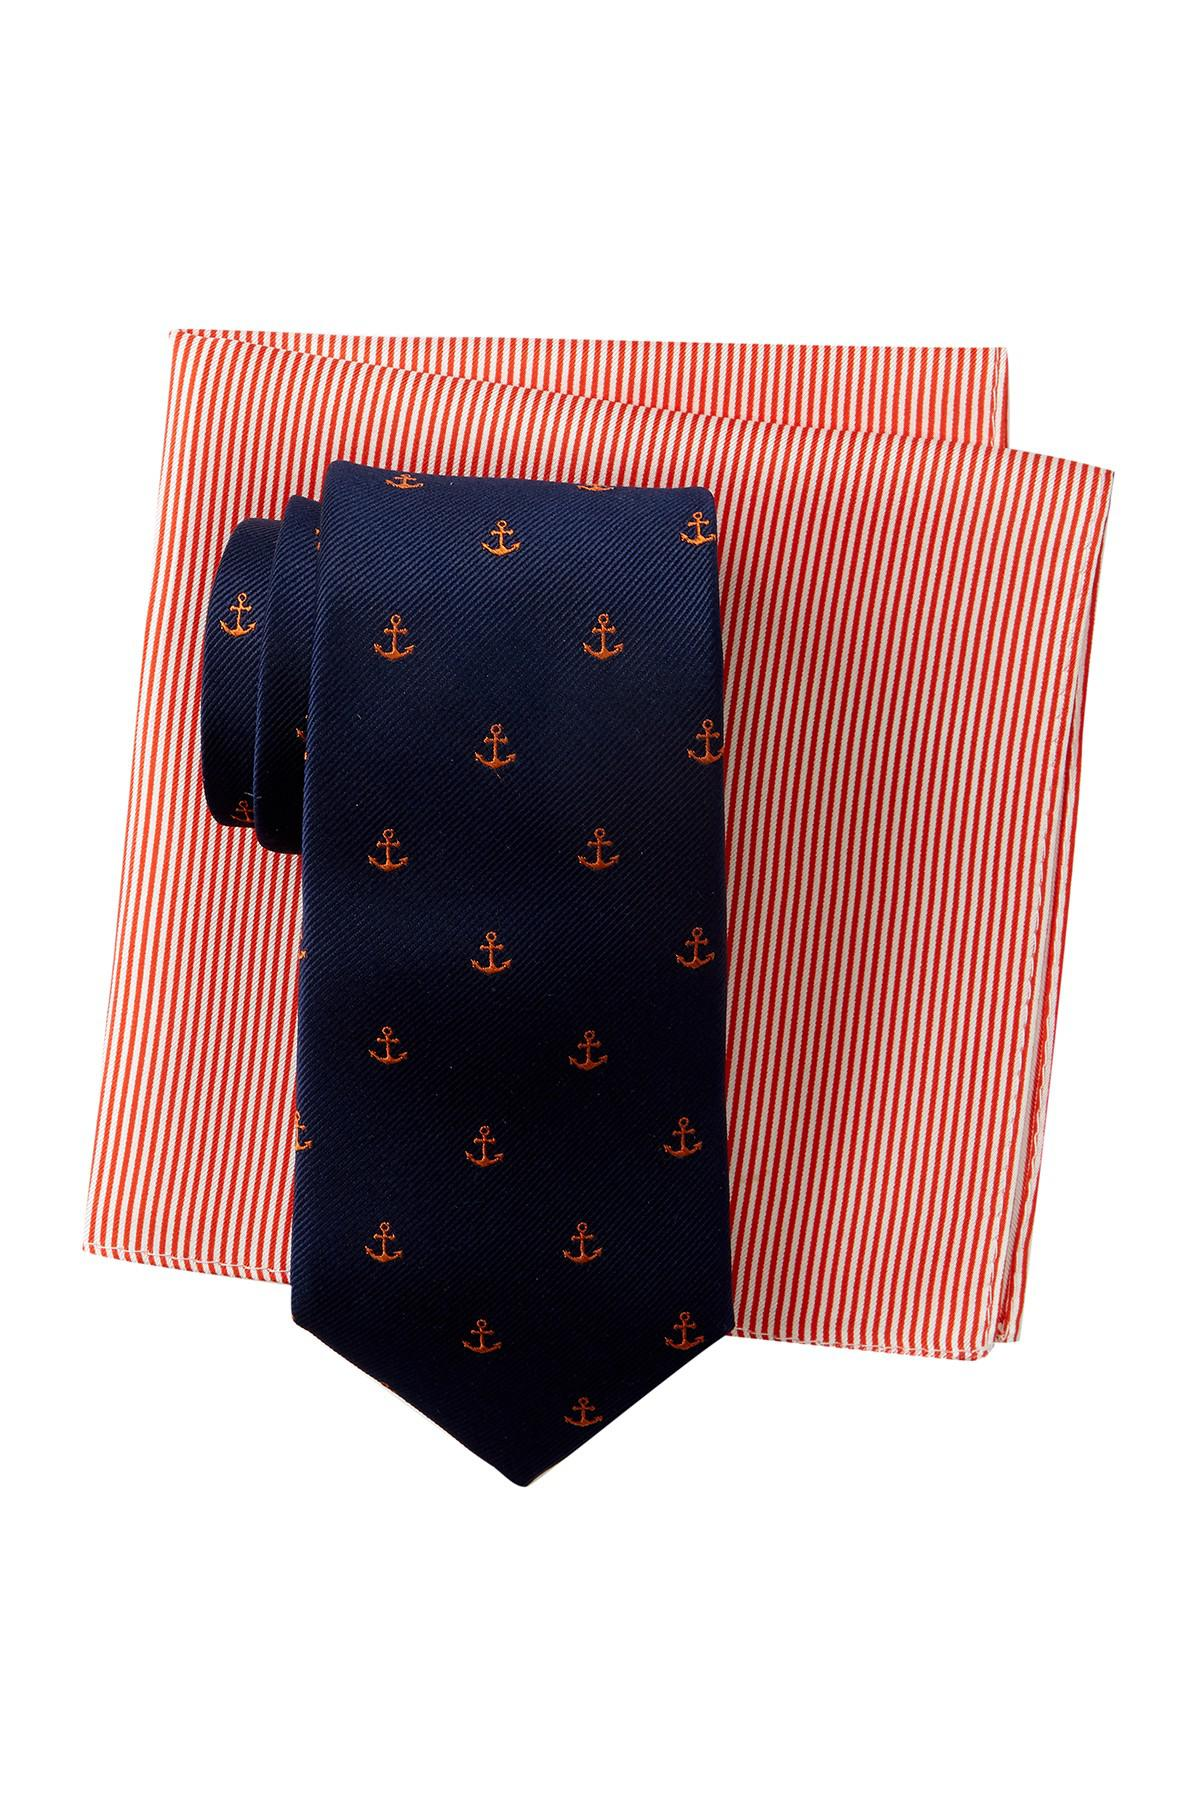 Details about  / 2 Tommy Hilfiger Me/'s Anchor and fest Silk Pocket Square